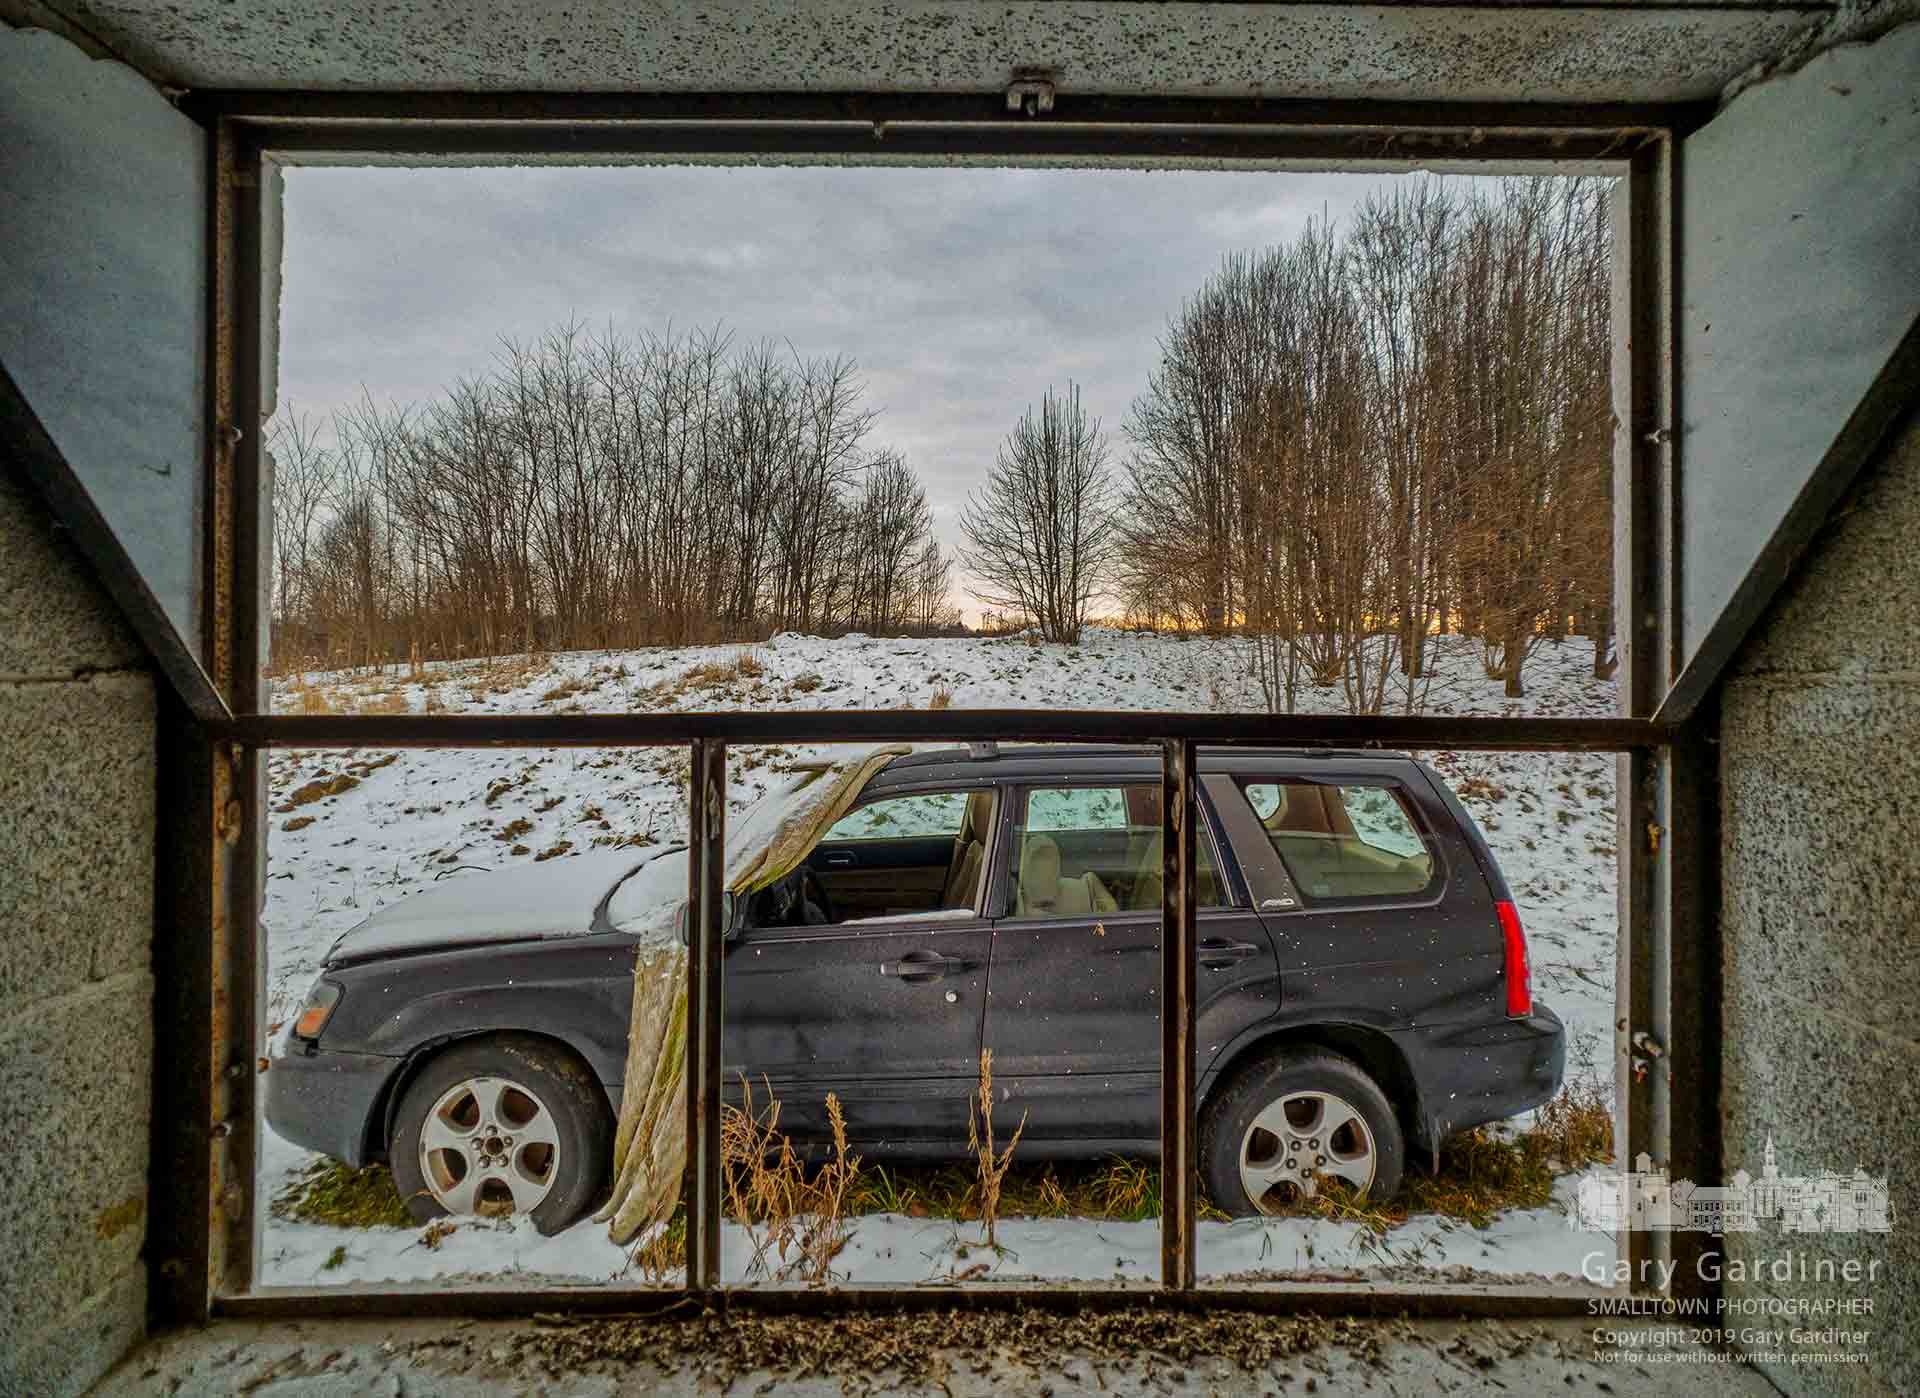 A broken car sits outside the broken windows of the barn on the Braun Farm property in Cleveland Ae at Cooper Road. My Final Photo for Jan. 28, 2019.